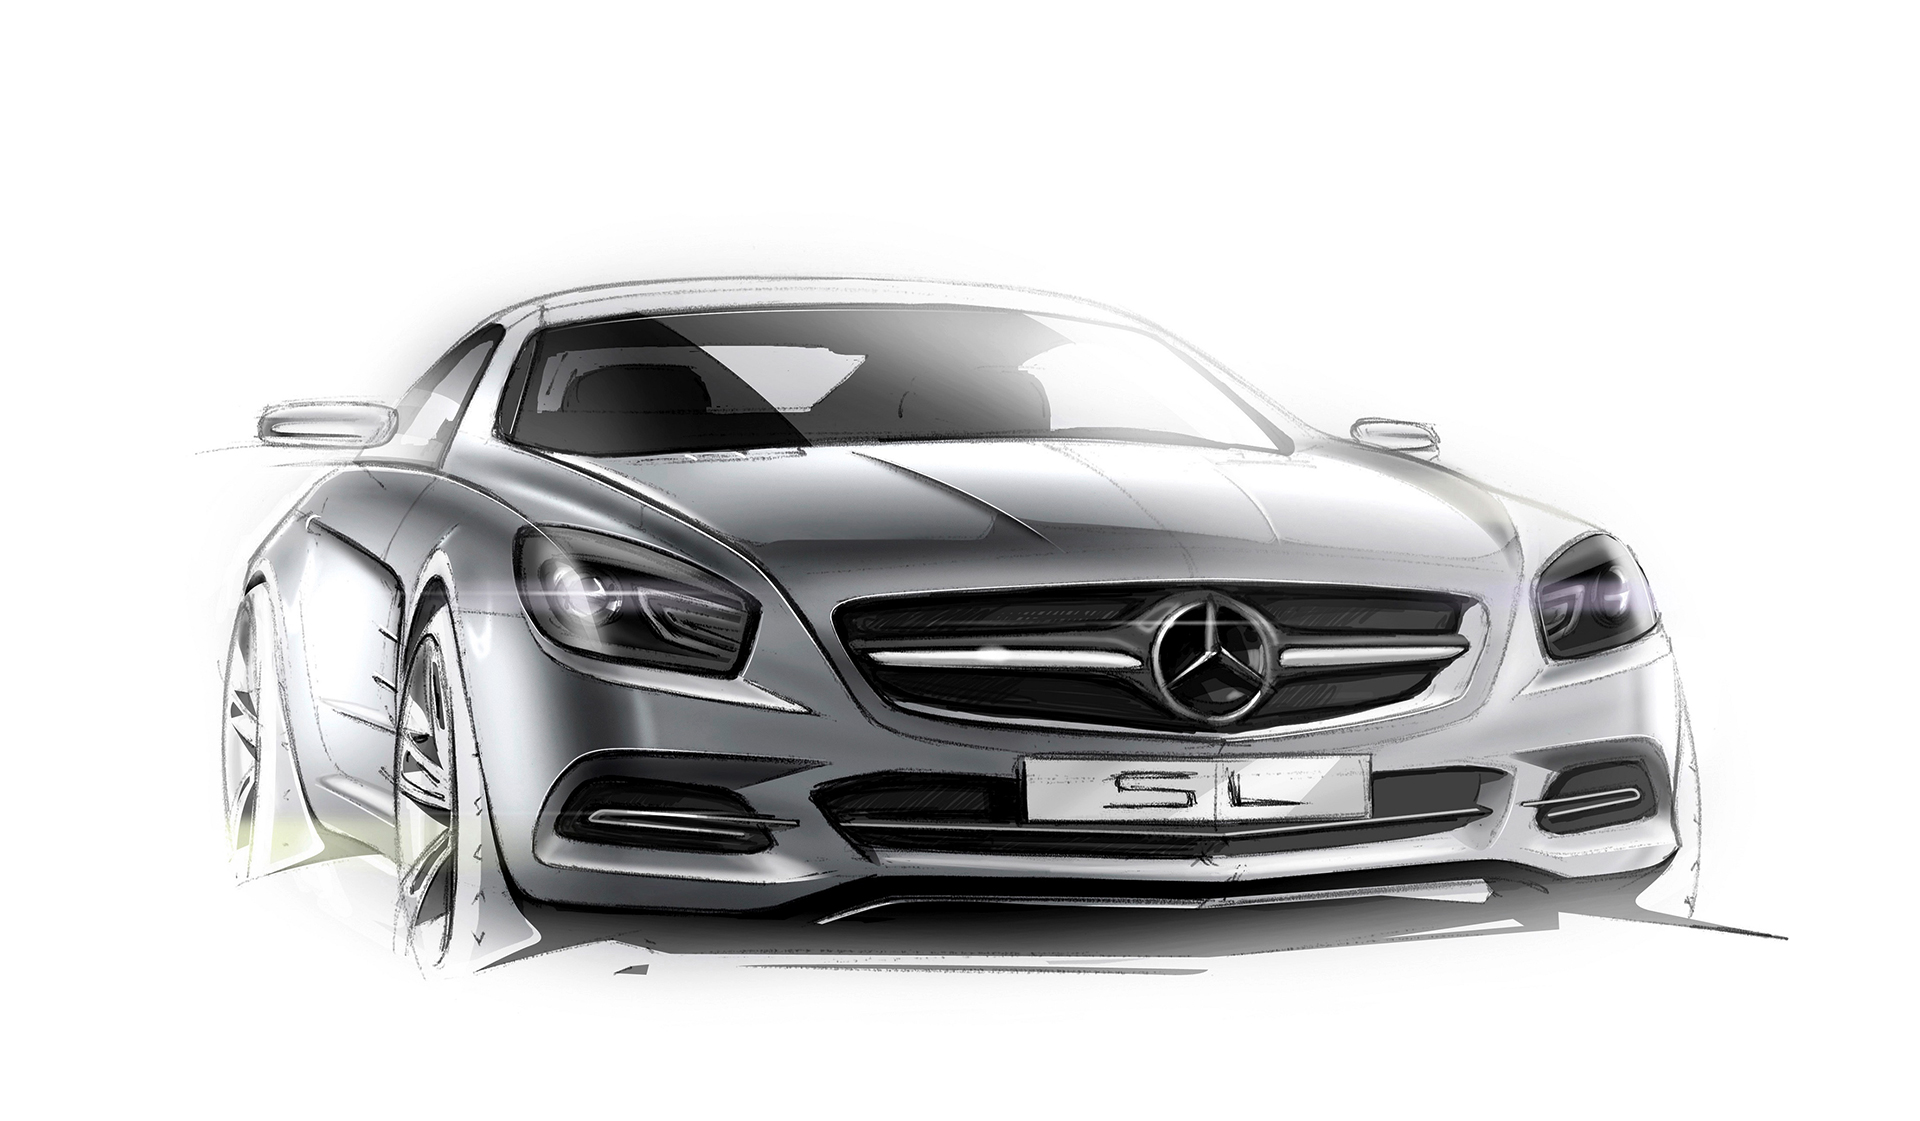 Mercedes-Benz SL - 2015 sketch design